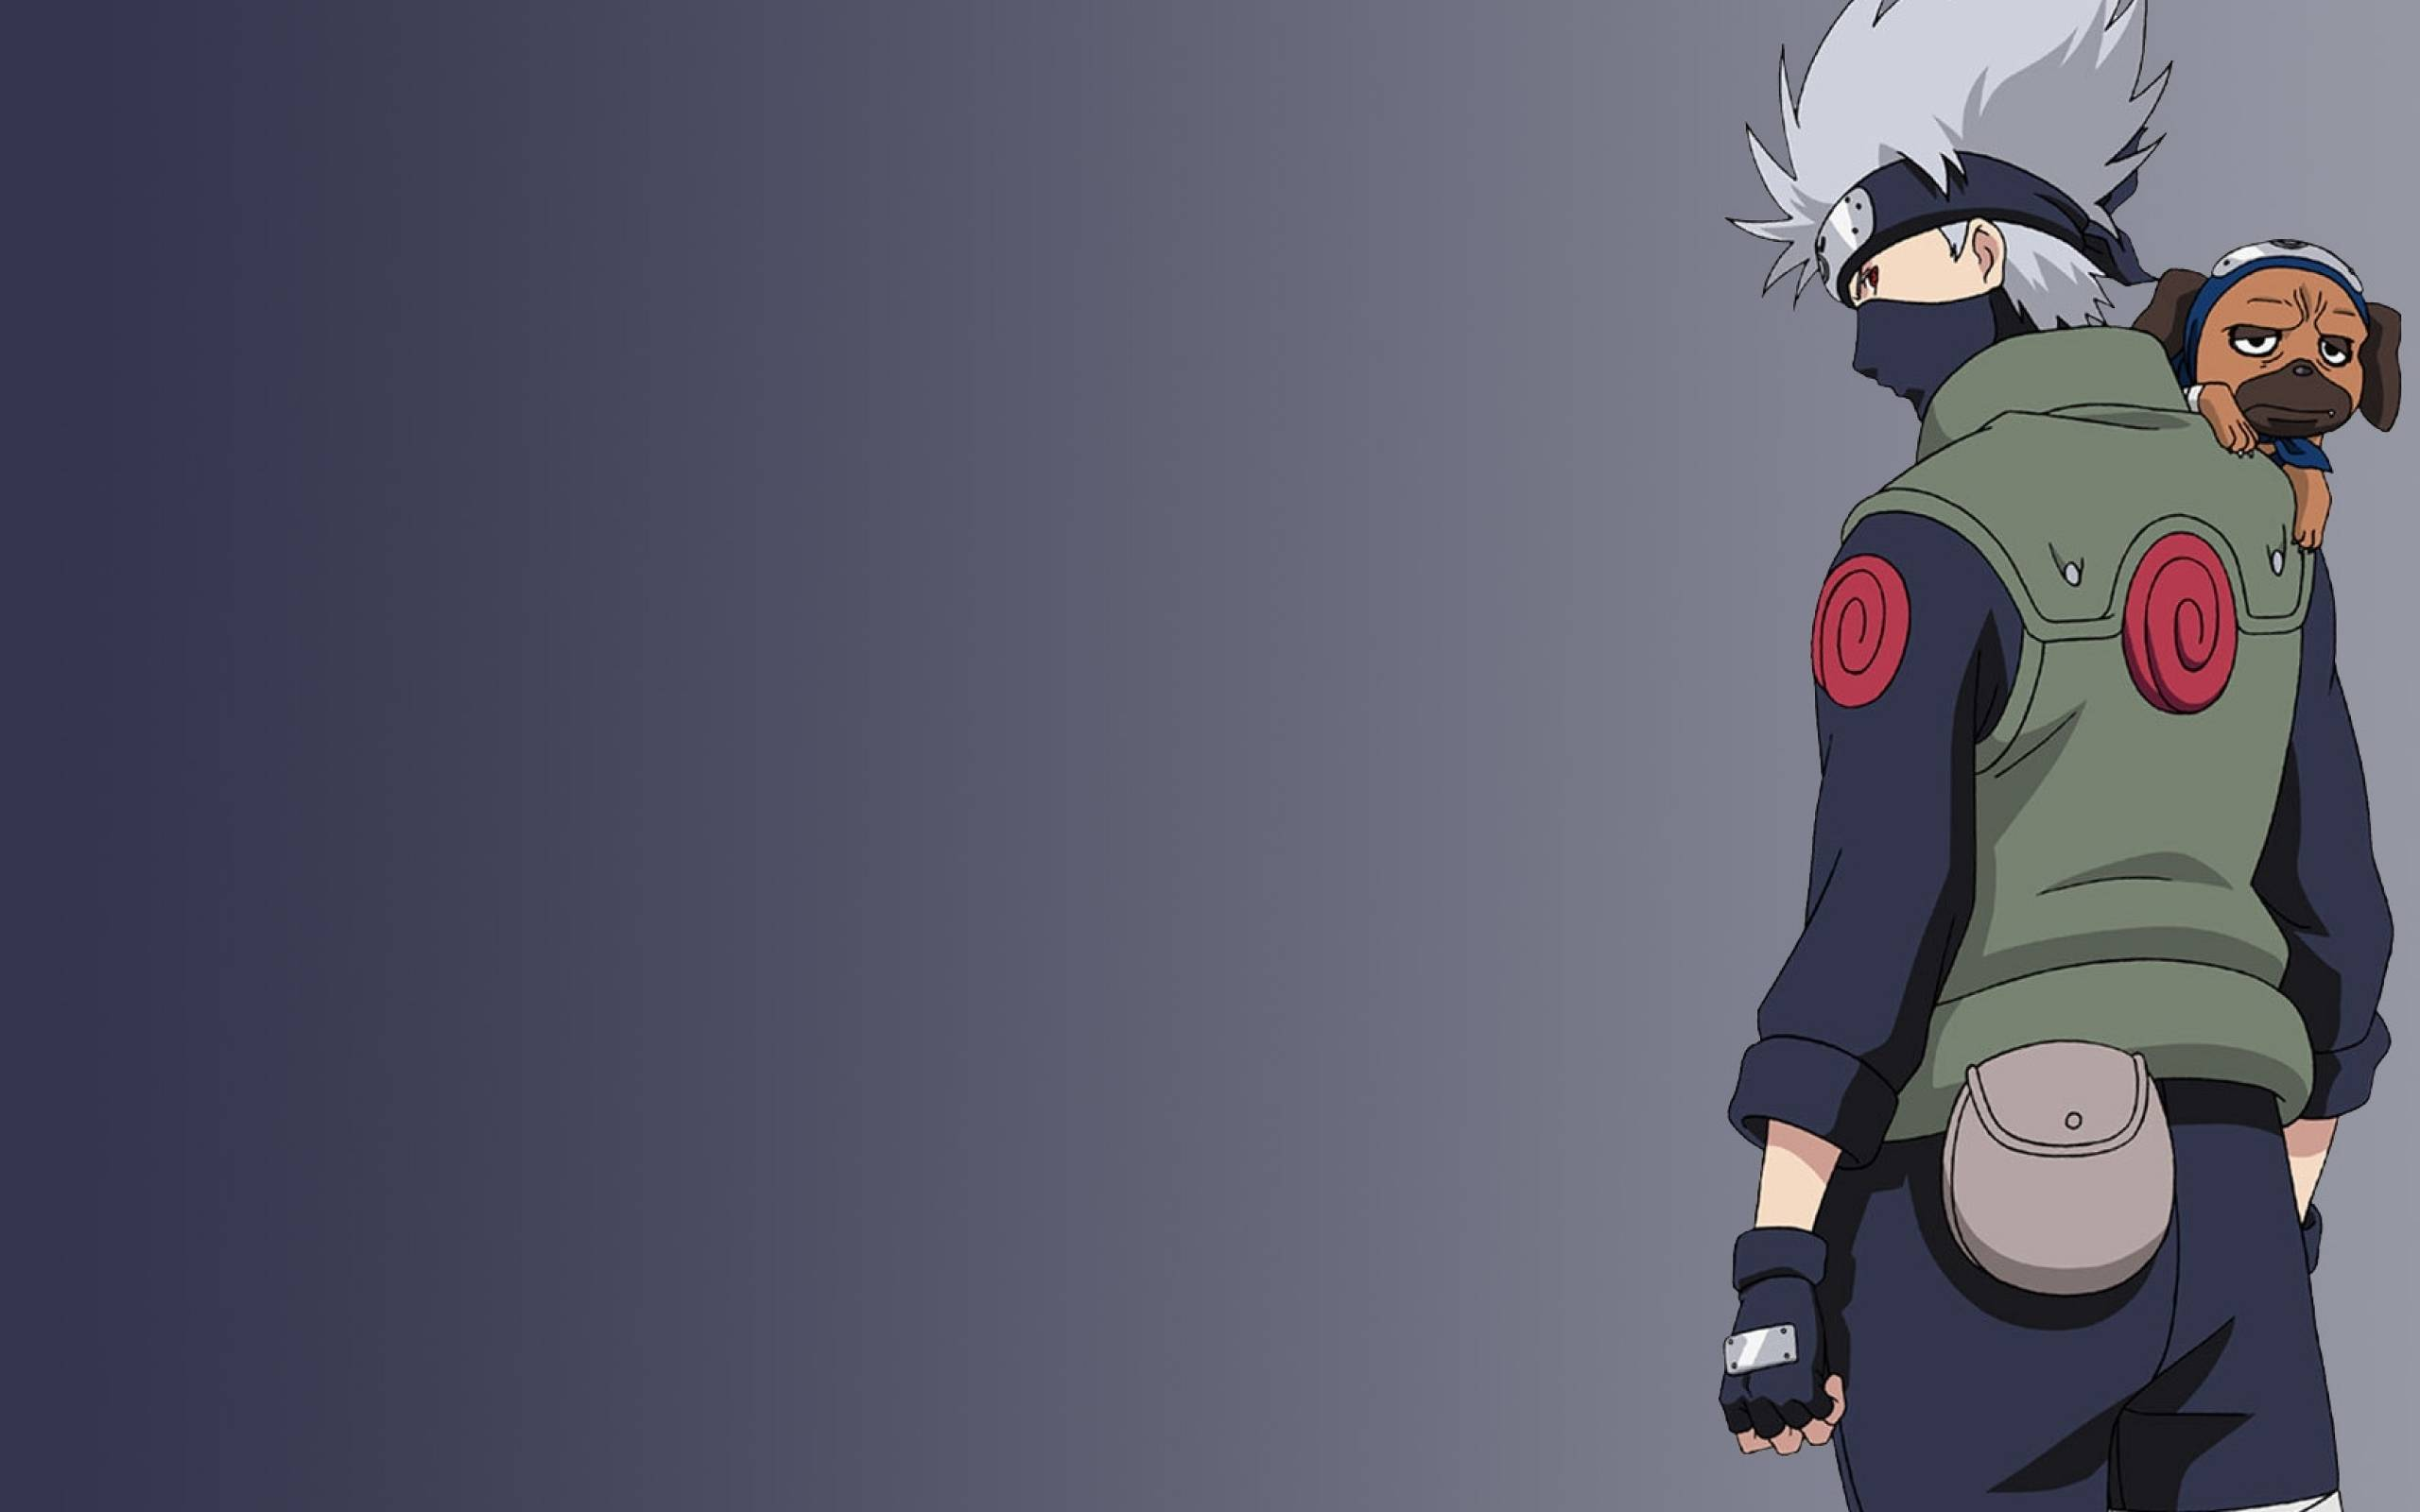 stuffpoint anime naruto images pictures kakashi hatake wallpaper tweet